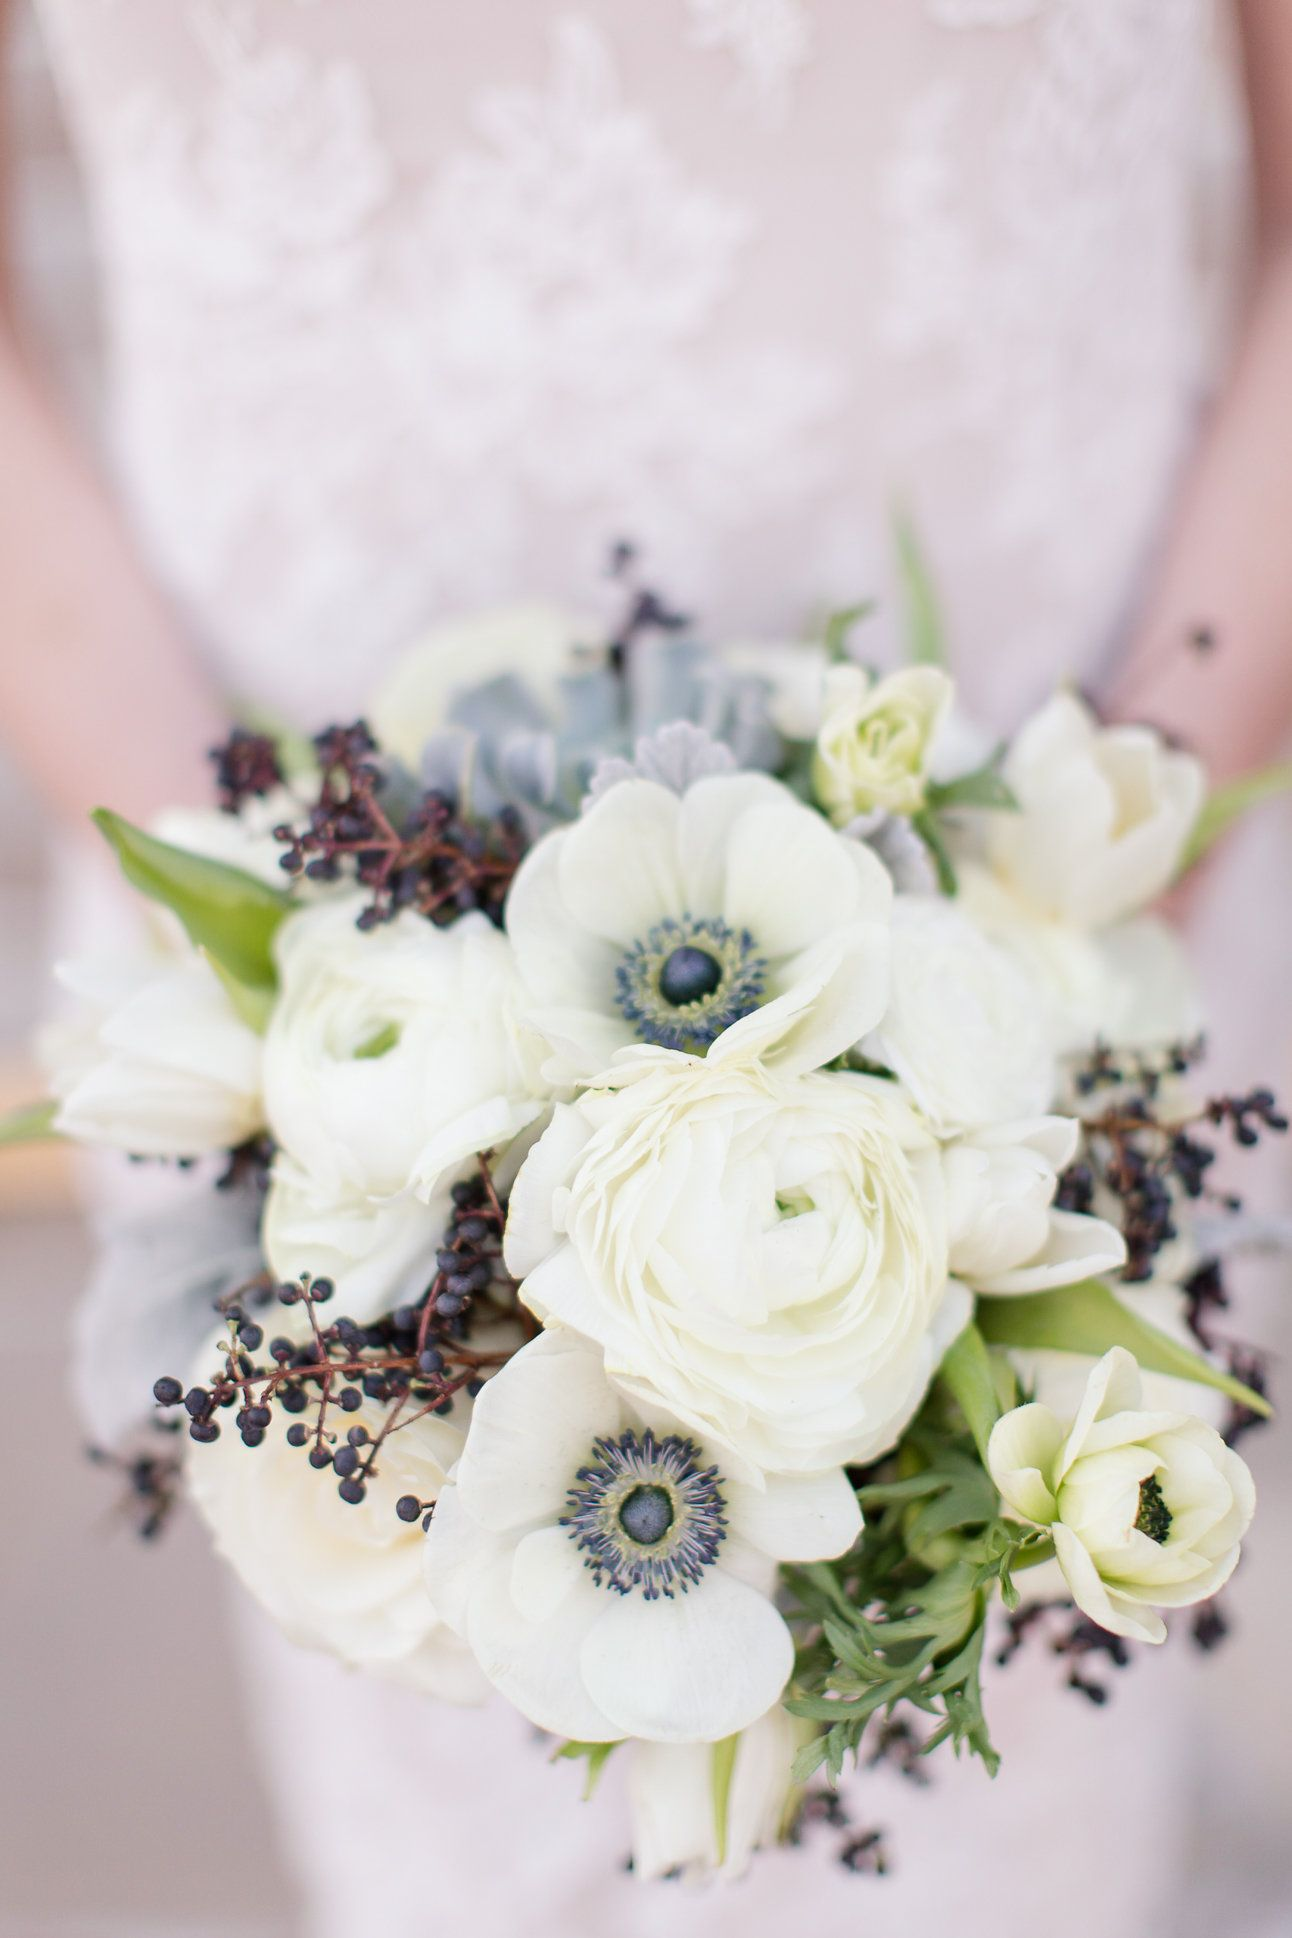 Anemone Ranunculus Succulents And Privet Berry Photo By Jill